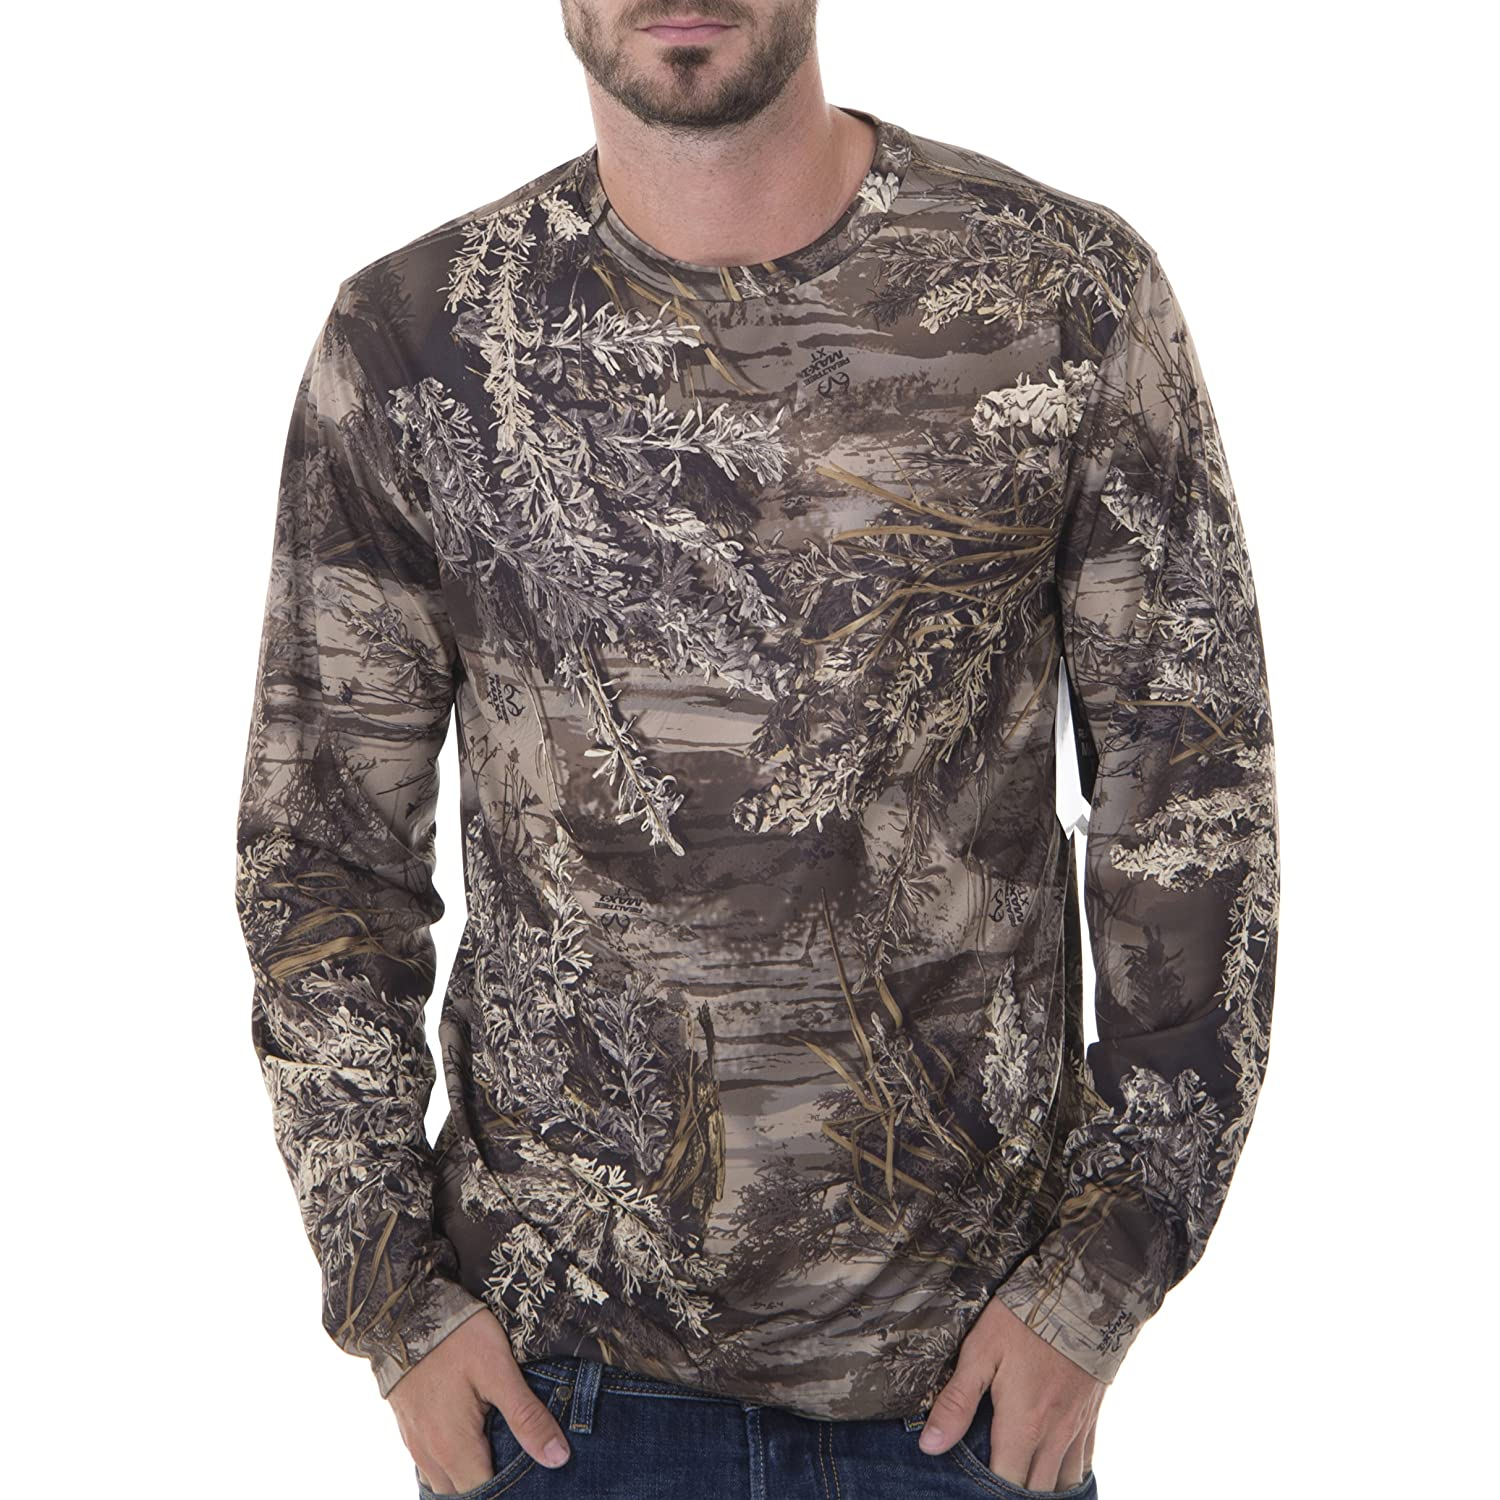 f2f184d299537 Top 10 wholesale Realtree Long Sleeve T Shirt - Chinabrands.com